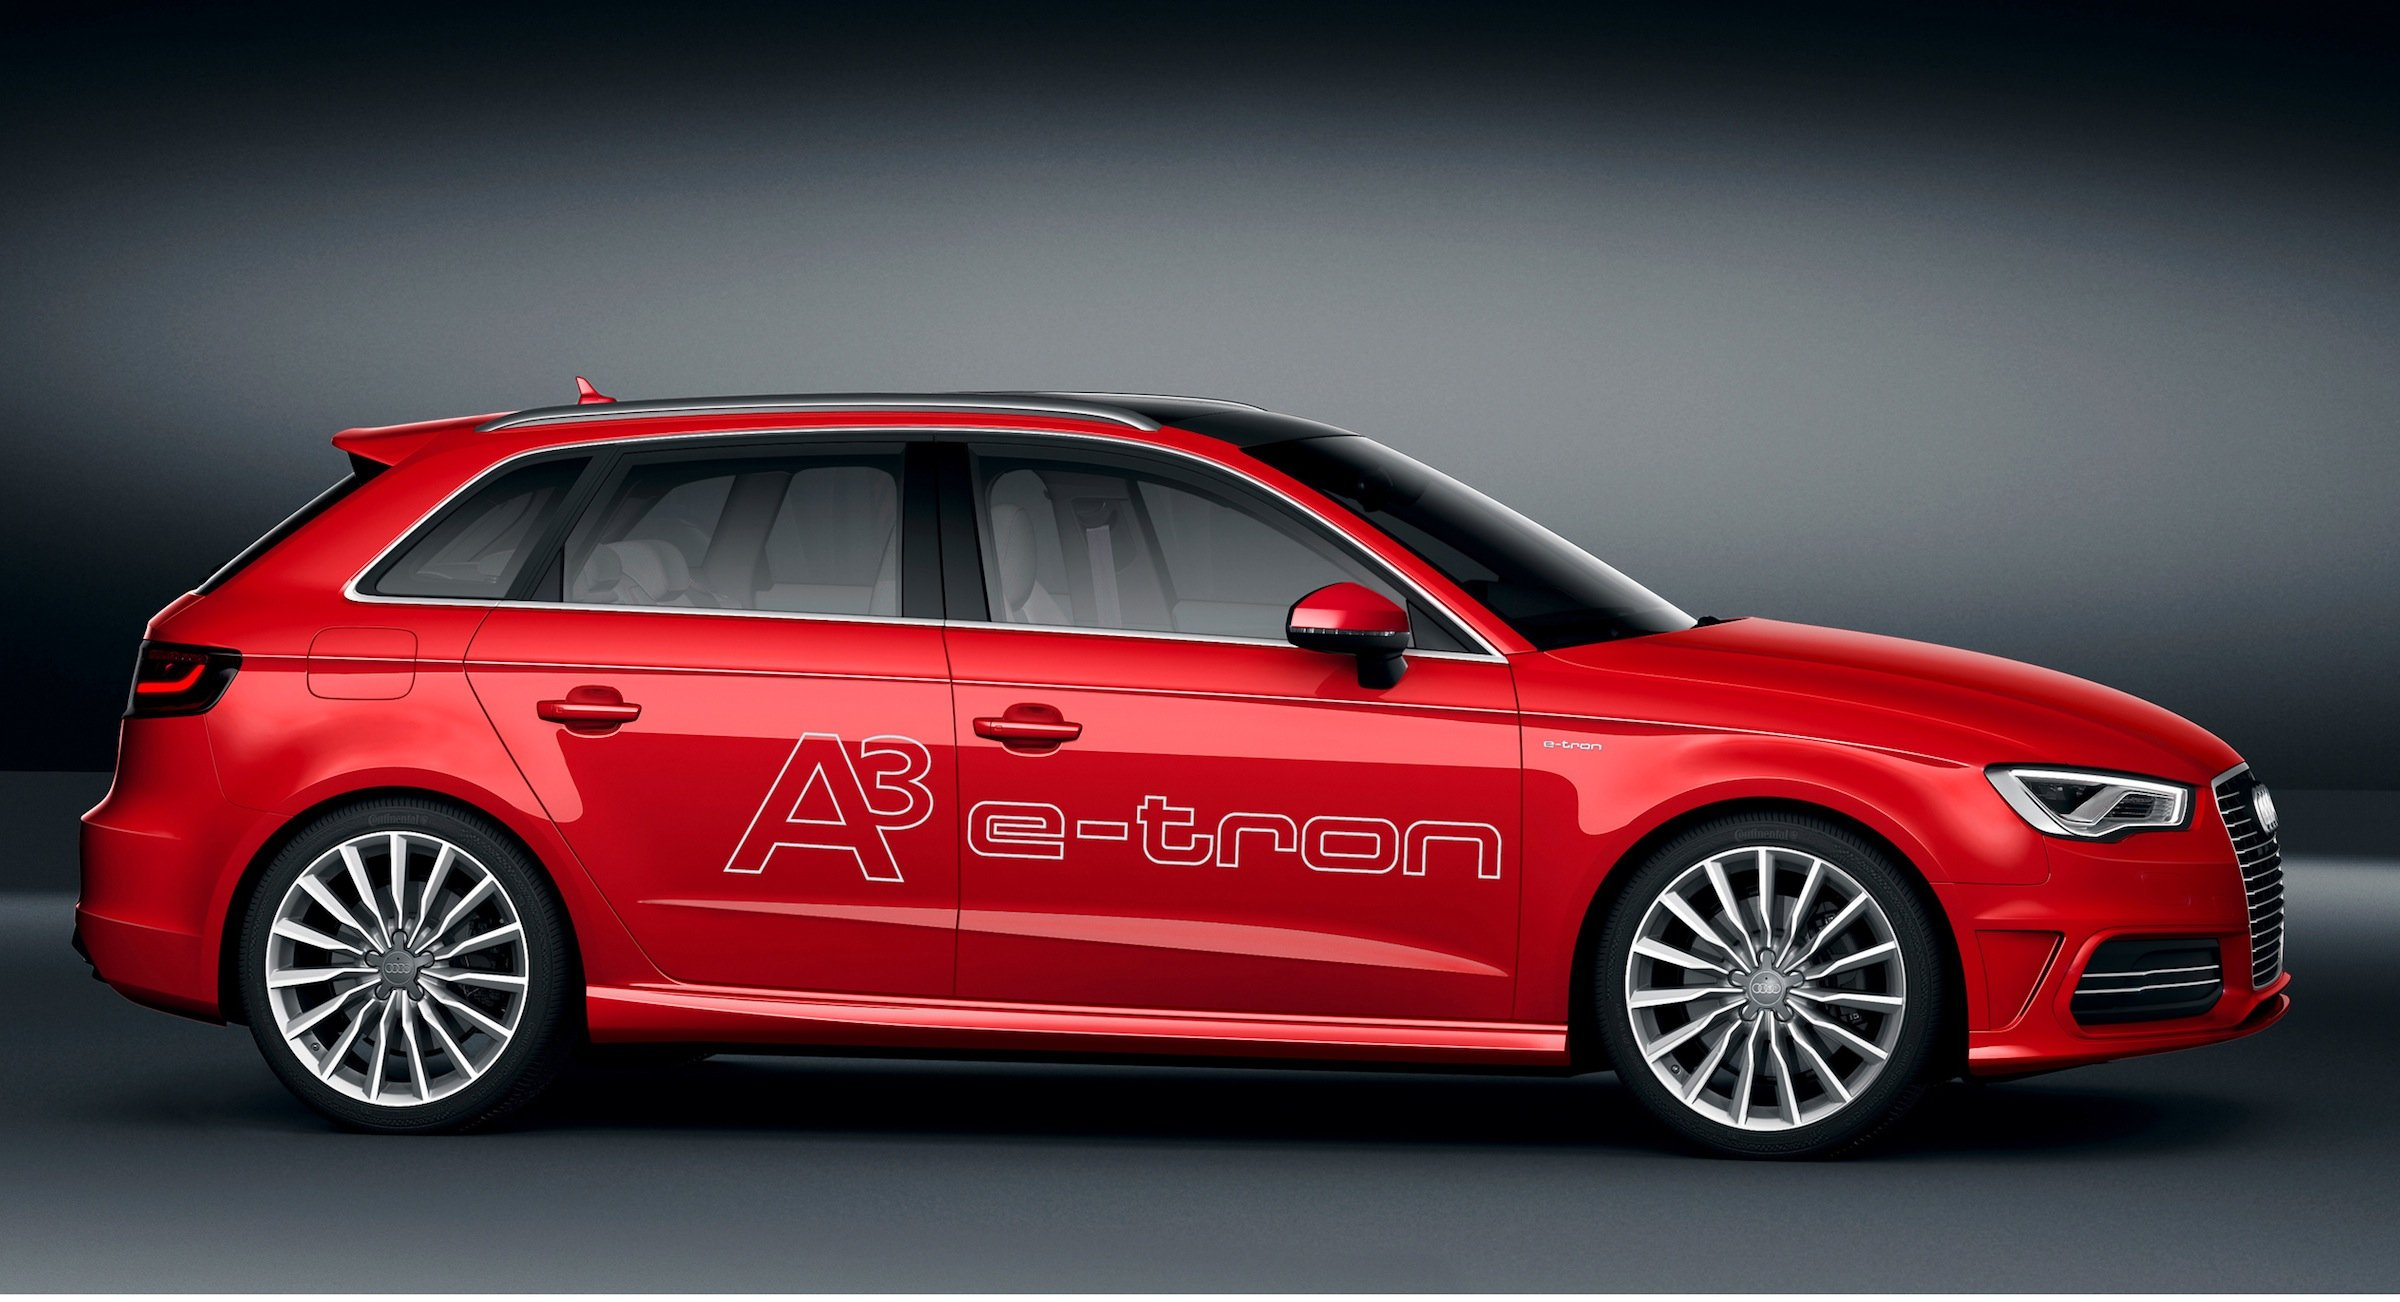 audi a3 e tron concept nails 1 5l 100km fuel economy. Black Bedroom Furniture Sets. Home Design Ideas